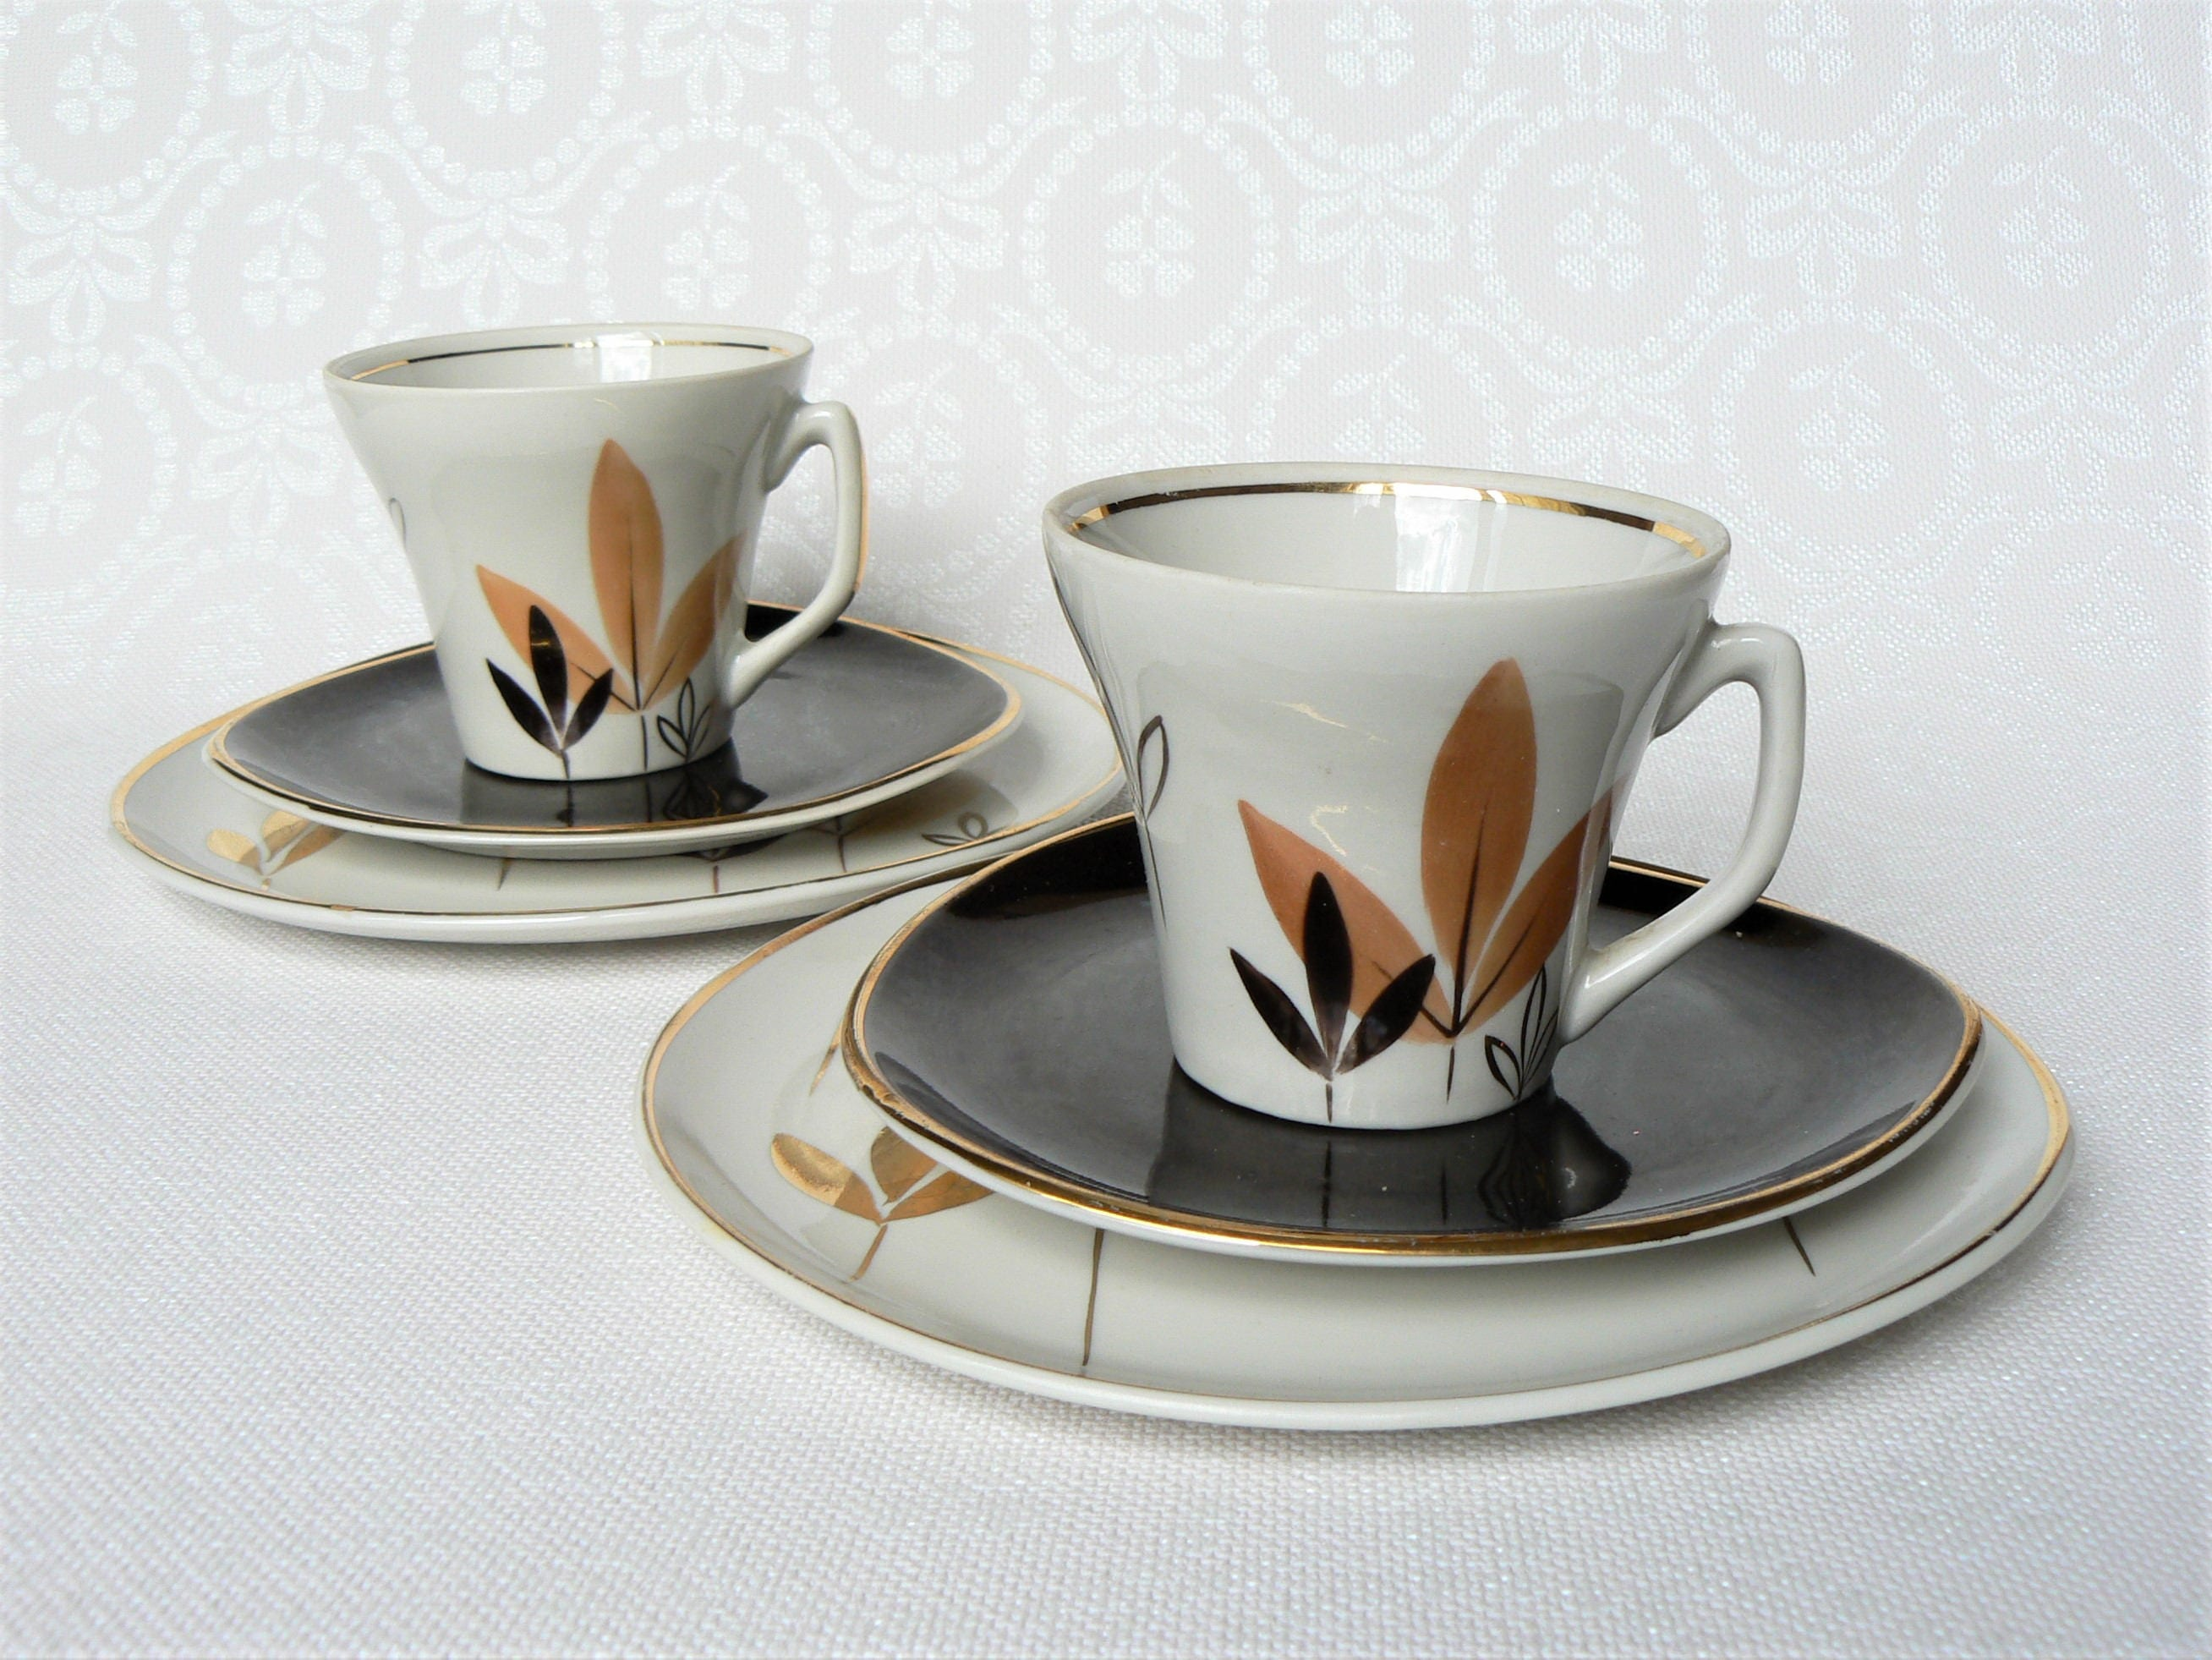 COFFEE Set Latvian Vintage/ Porcelain Coffee Cup Saucer u0026 Dessert Plate/ Handpainted Leaves : coffee plates decor - pezcame.com